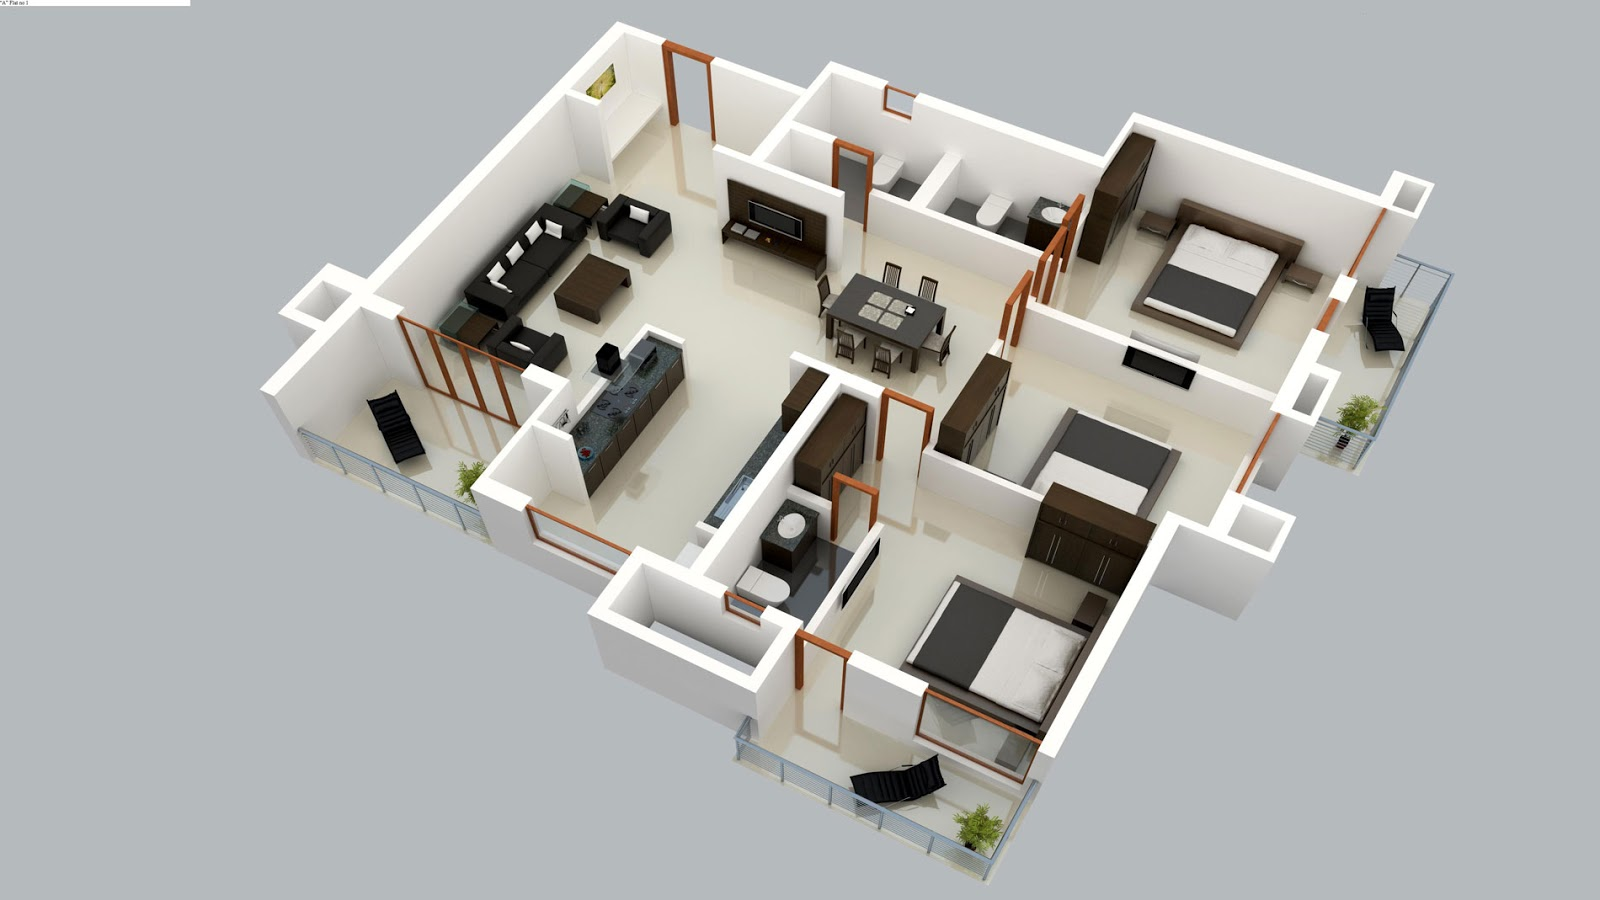 Foundation dezin decor 3d plan layout furniture Building design tool